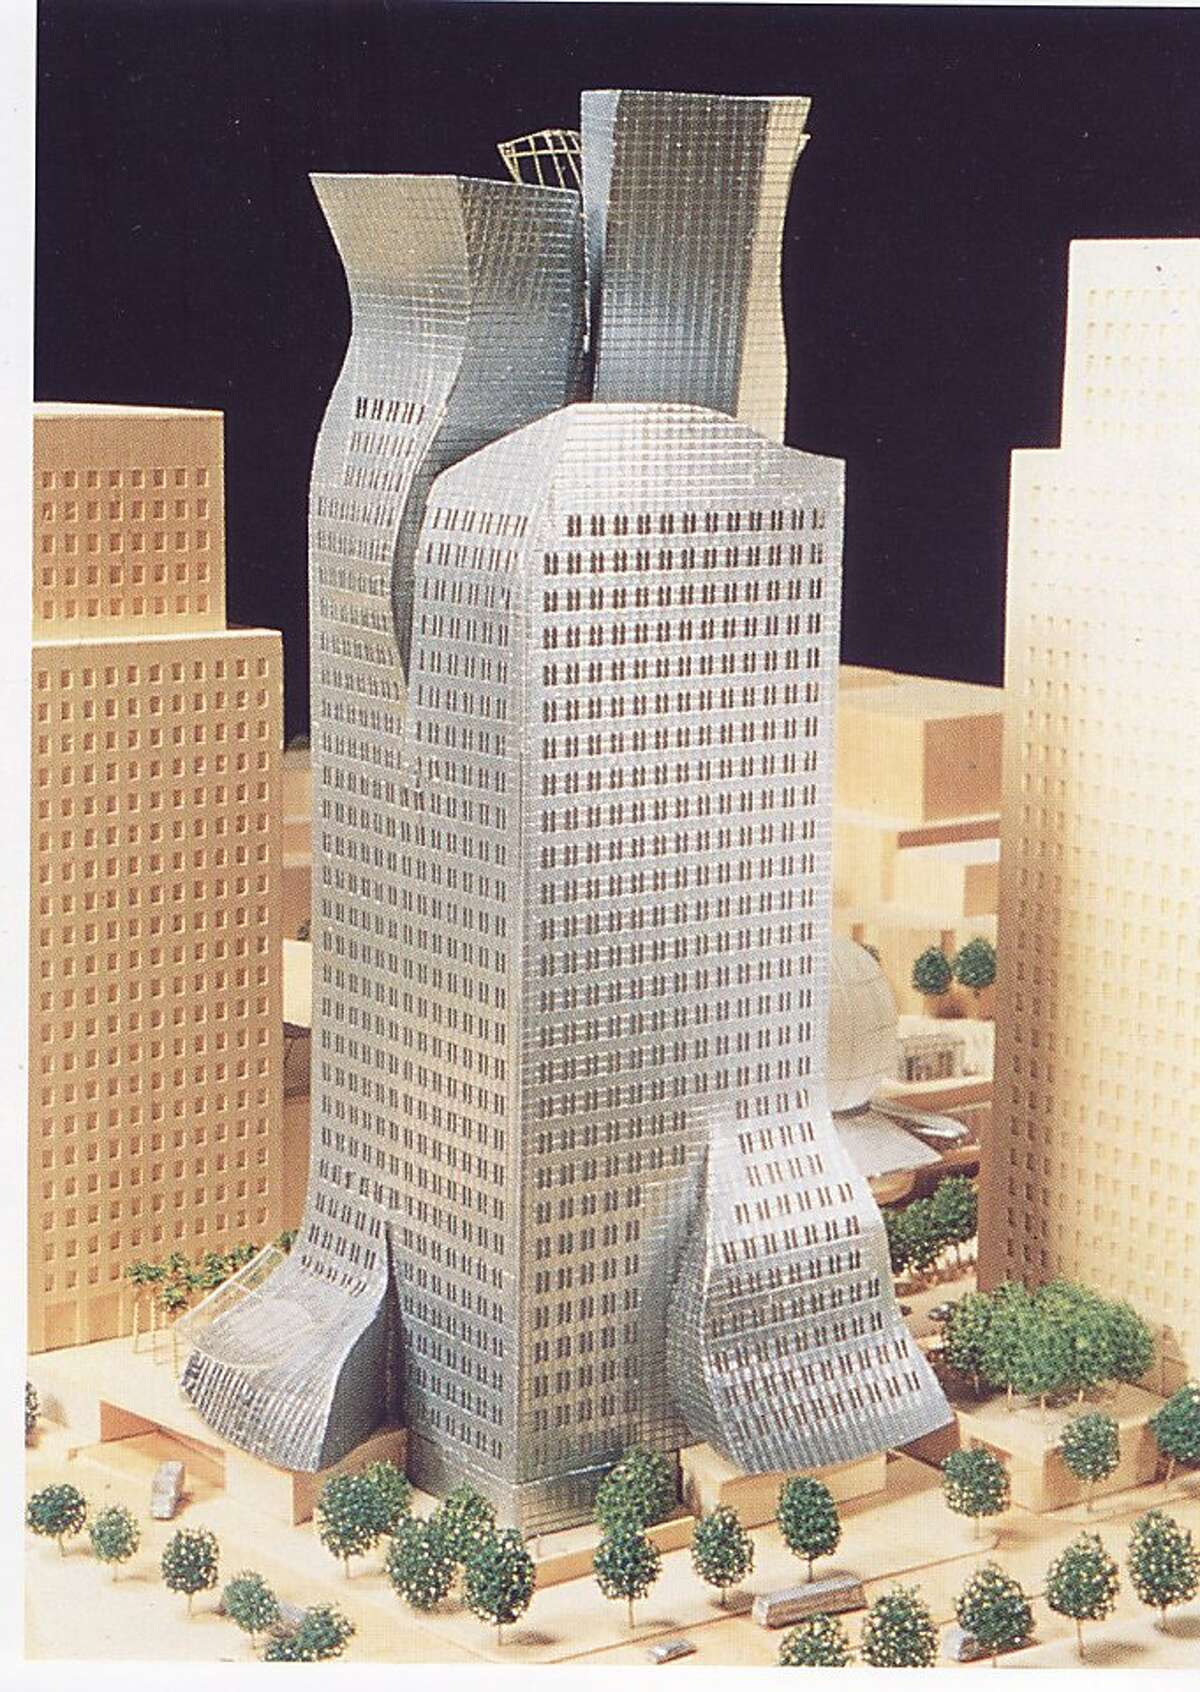 This tower designed by Frank Gehry in 1991 as a headquarters for the Los Angeles Rapid Transit District, but a different architect was selected instead. From the book